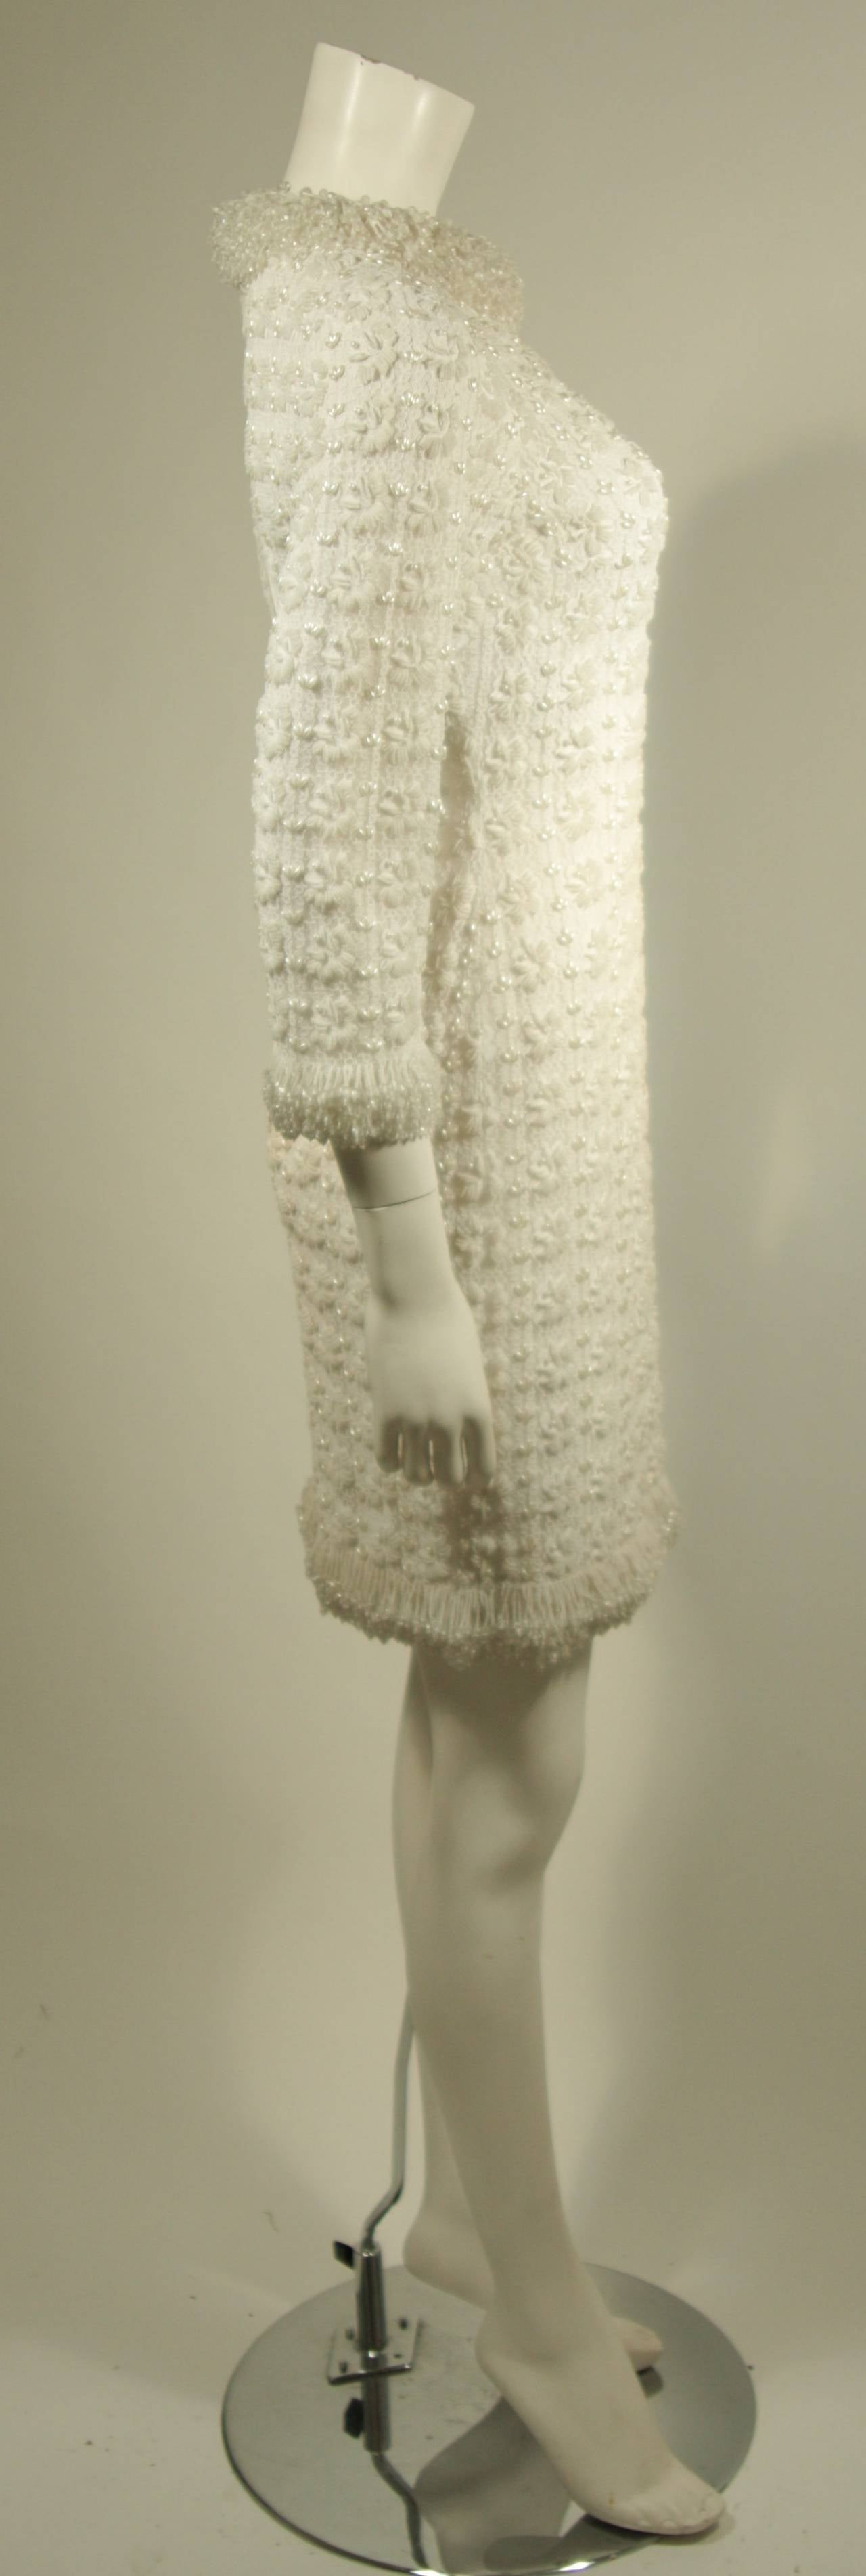 1960's White Beaded Cocktail Dress 7